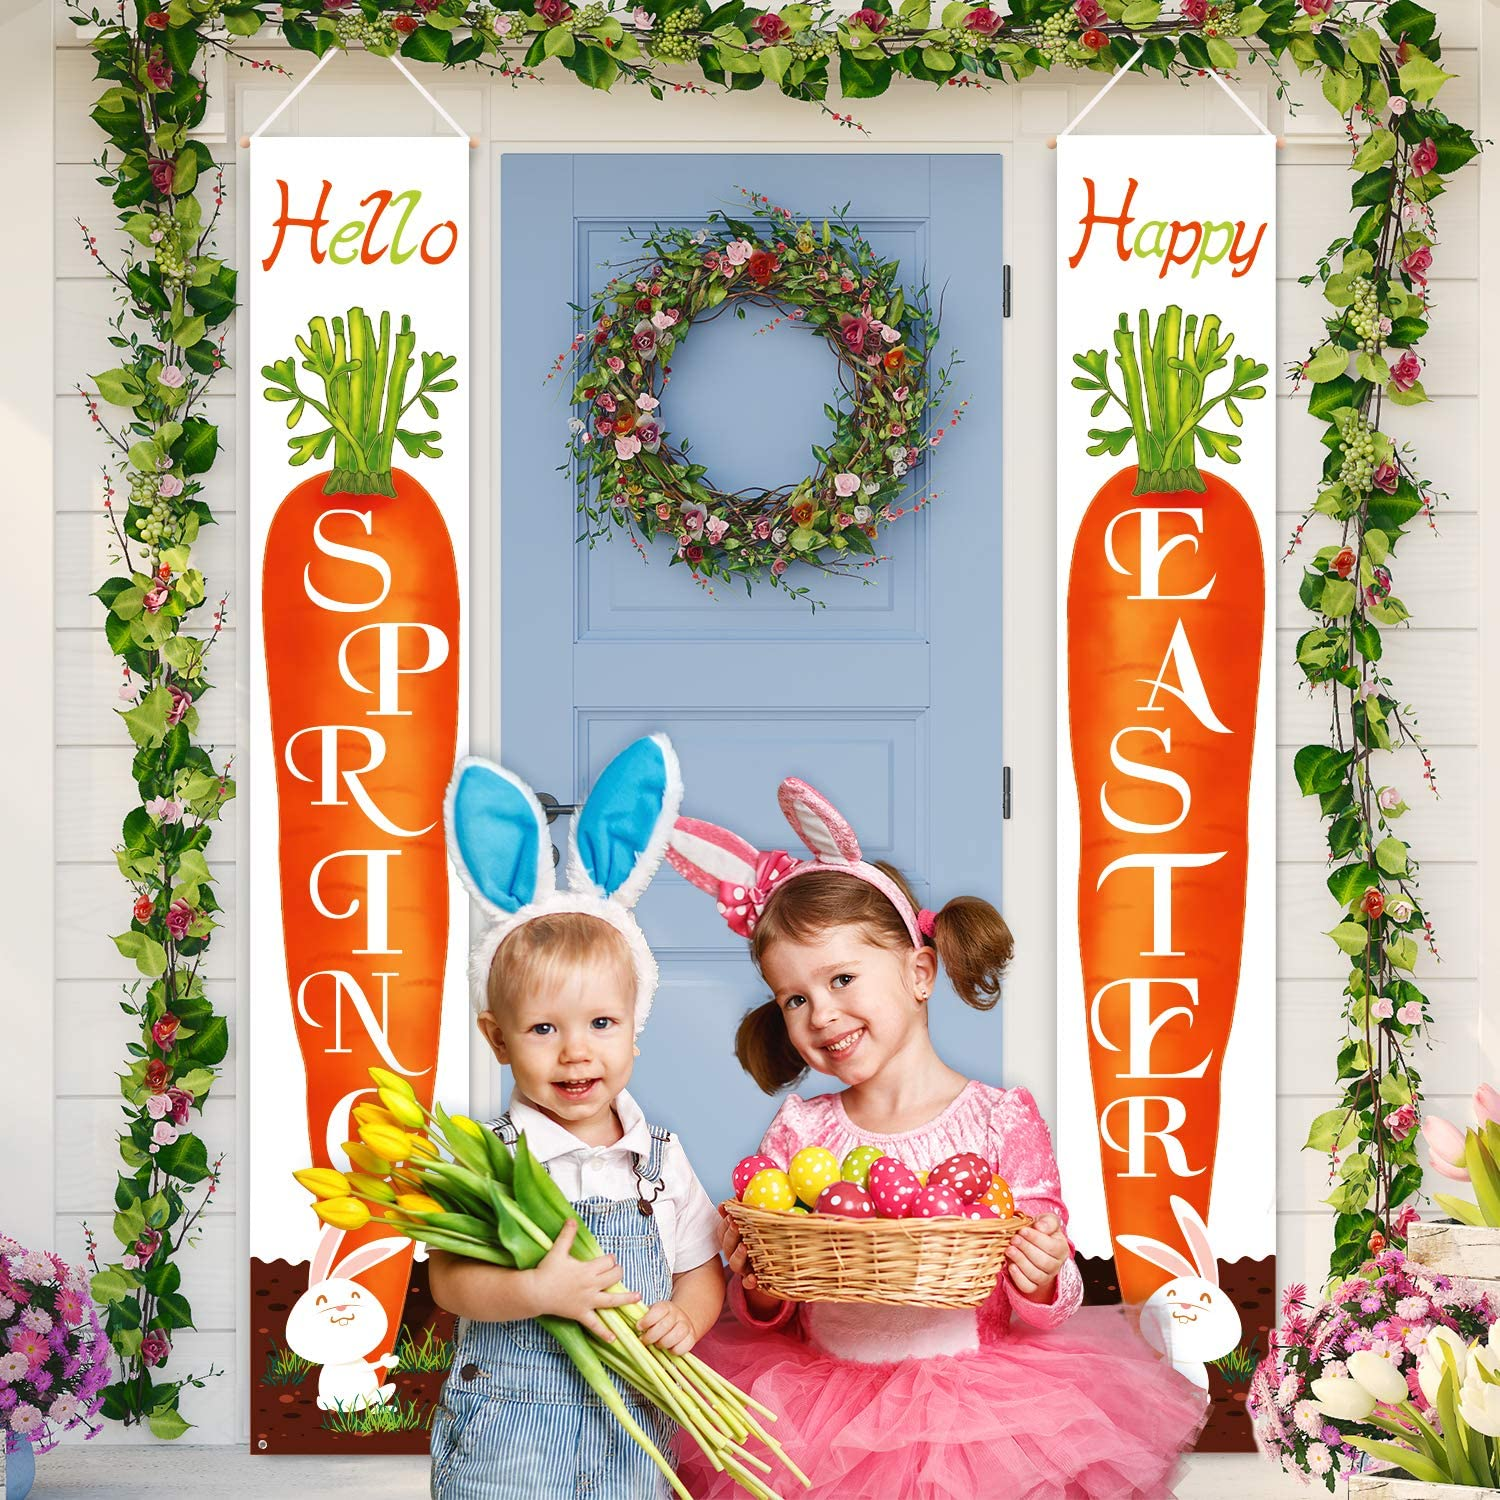 Whaline Easter Porch Sign, Happy Easter Hanging Banners, Bunny Carrot Hello Spring Door Hanger, for Home Garden Indoor Outdoor Porch Wall Decoration